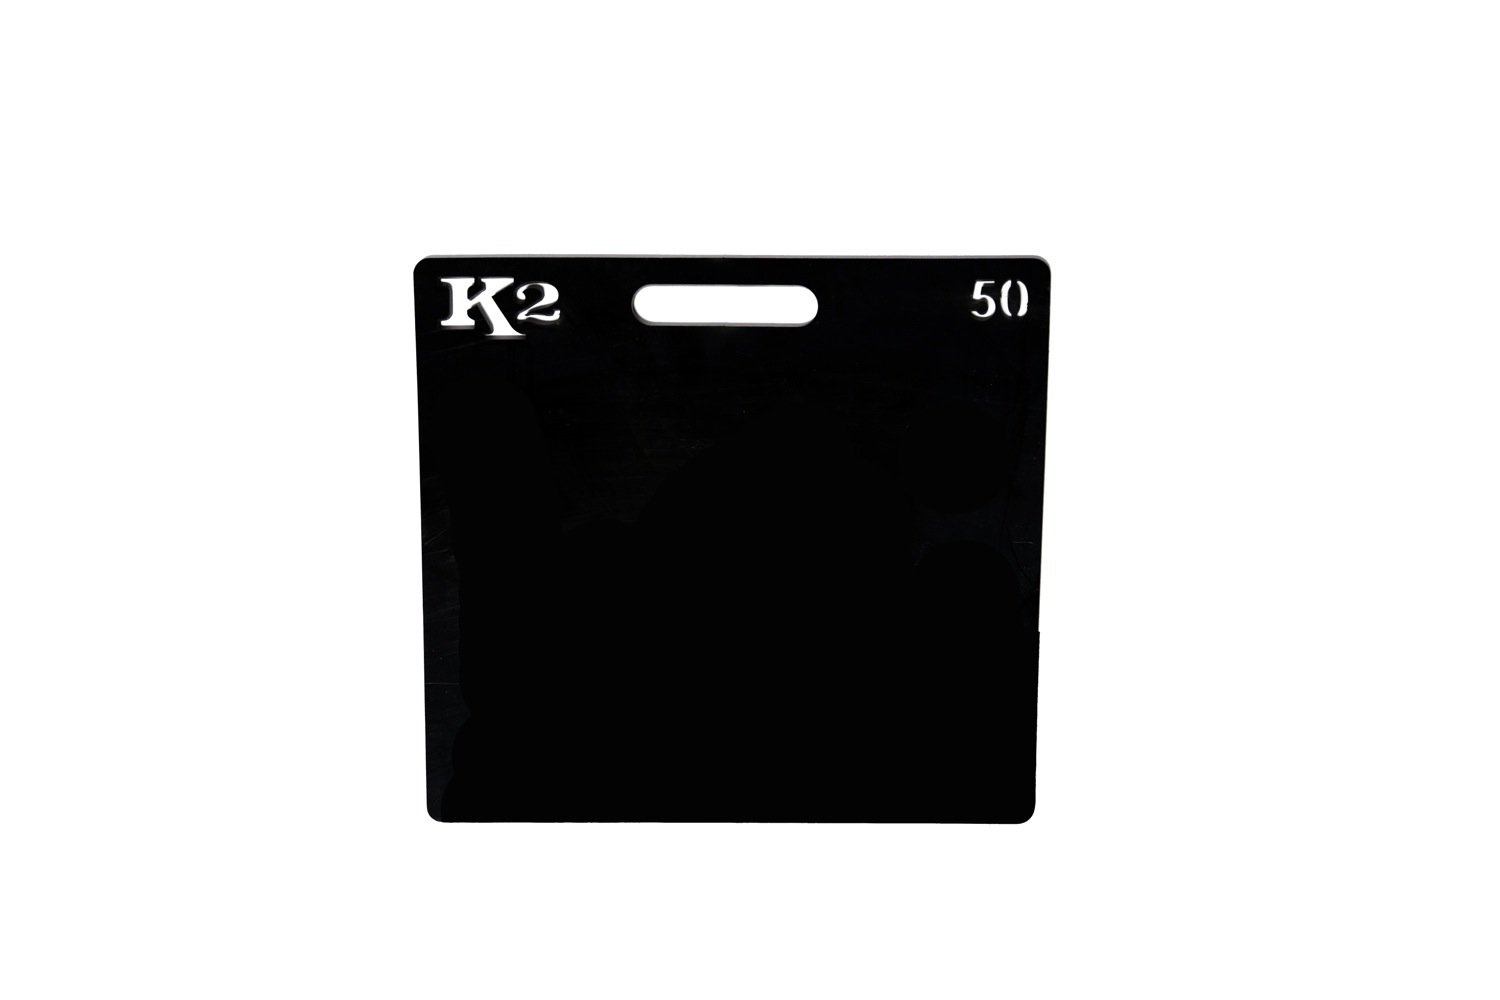 K2 Coolers Starboard Divider/Cutting Board fits The Summit 50 by K2 Coolers